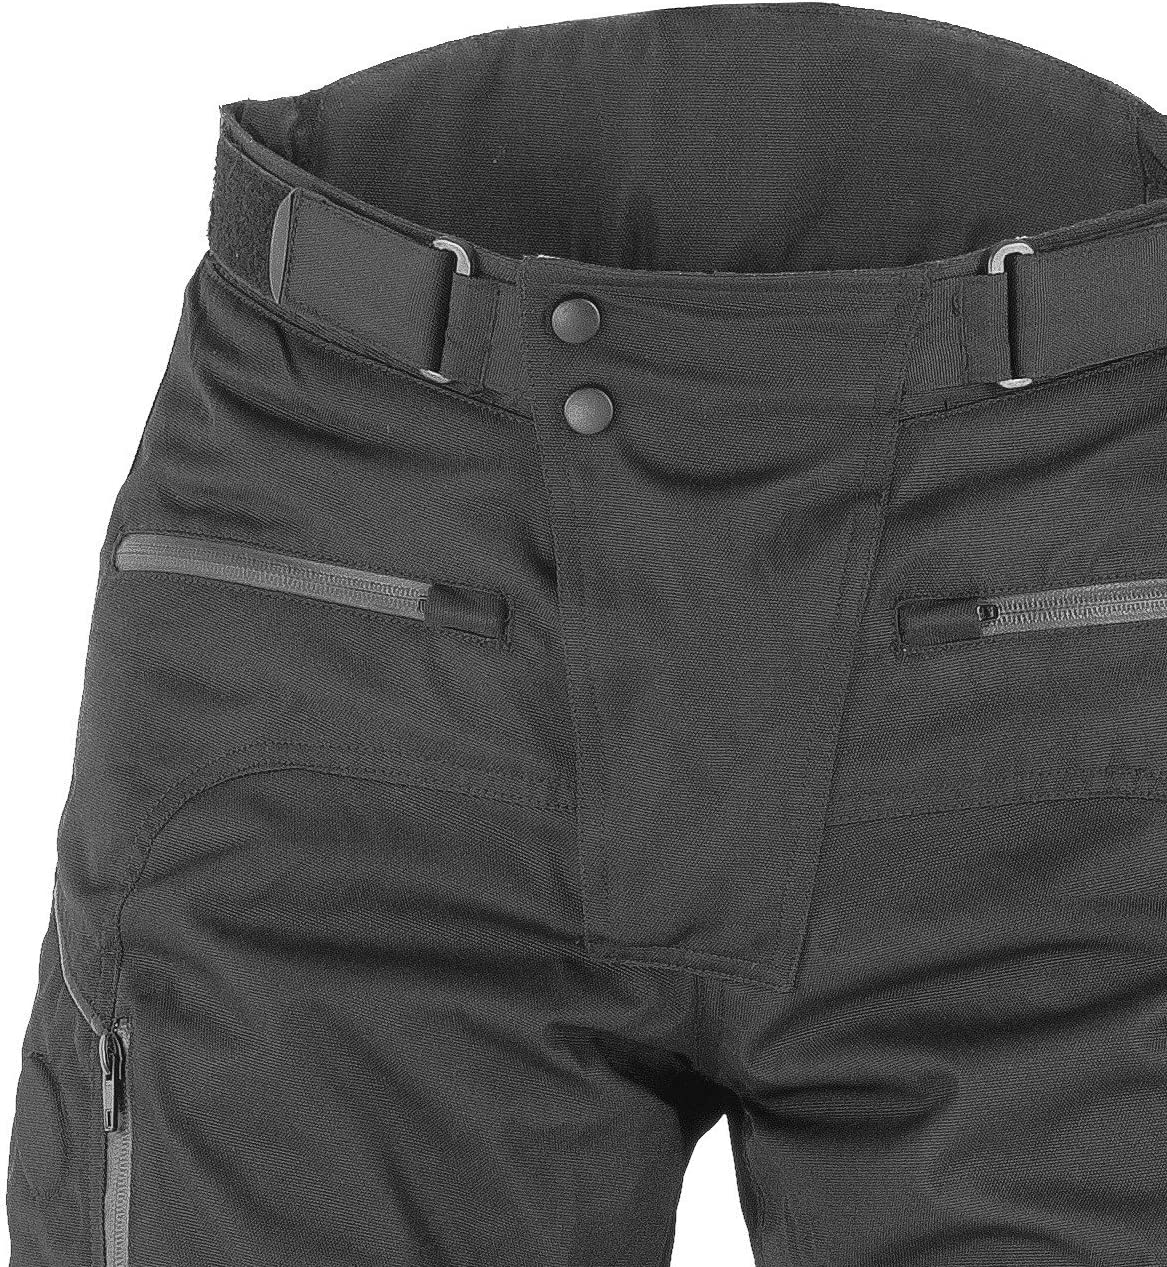 6XL Black NERVE 1011040404/_10 Highway Motorcycle Trousers